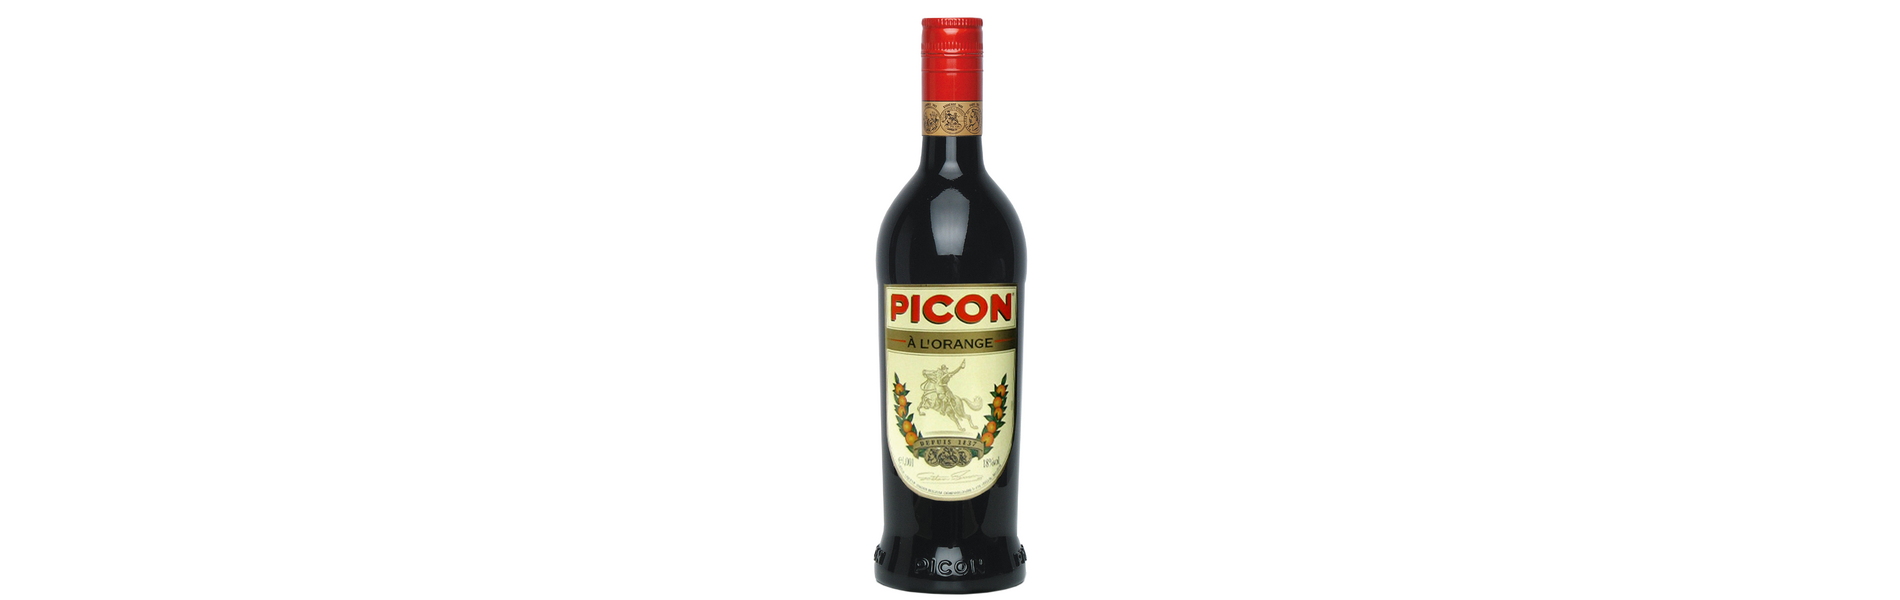 PICON A L'ORANGE 100CL 18%